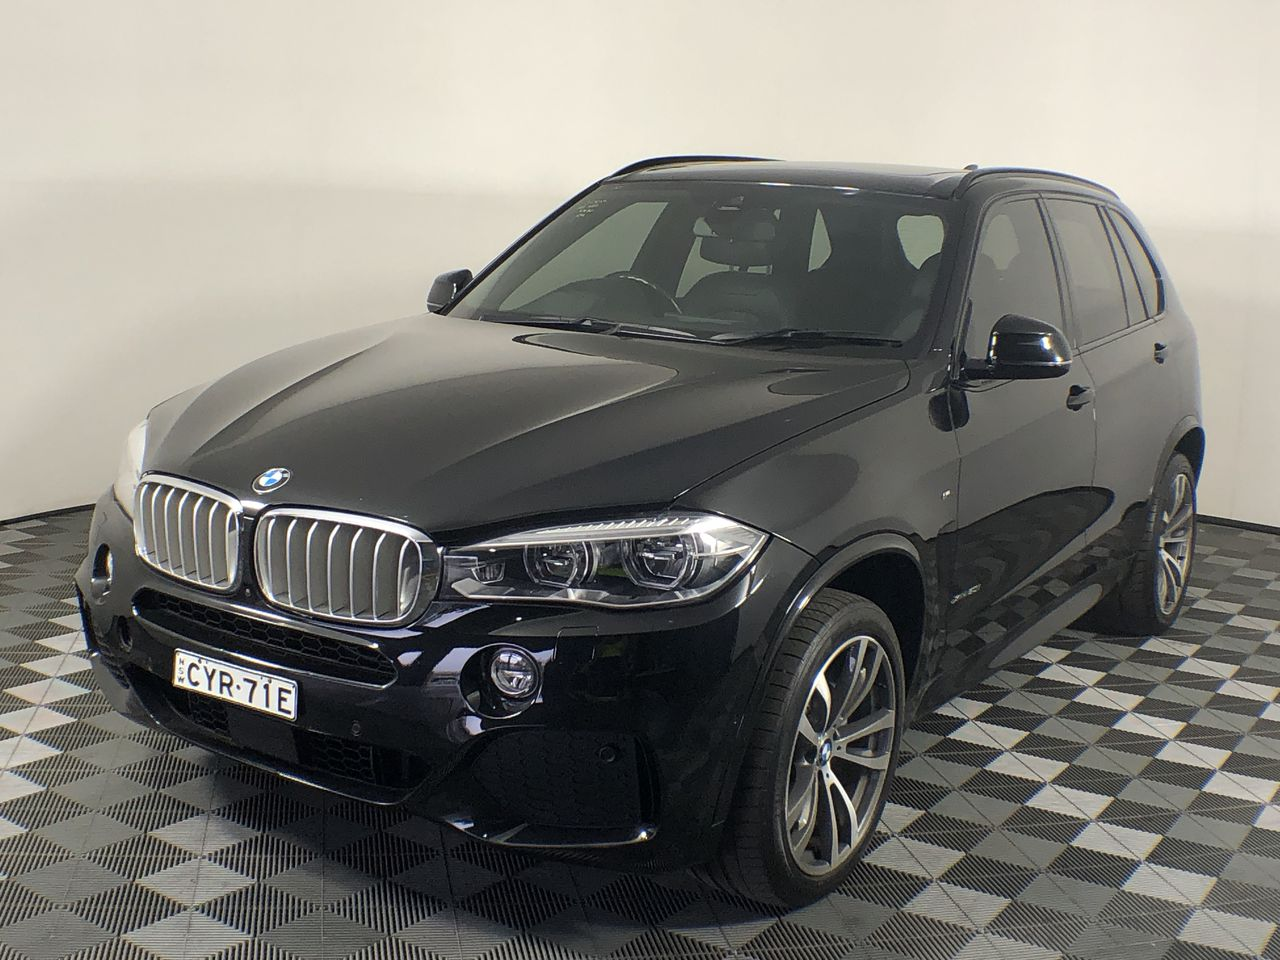 2015 BMW X5 xDrive 50i M-Sport F15 Automatic 7 Seat Wagon 48,176km